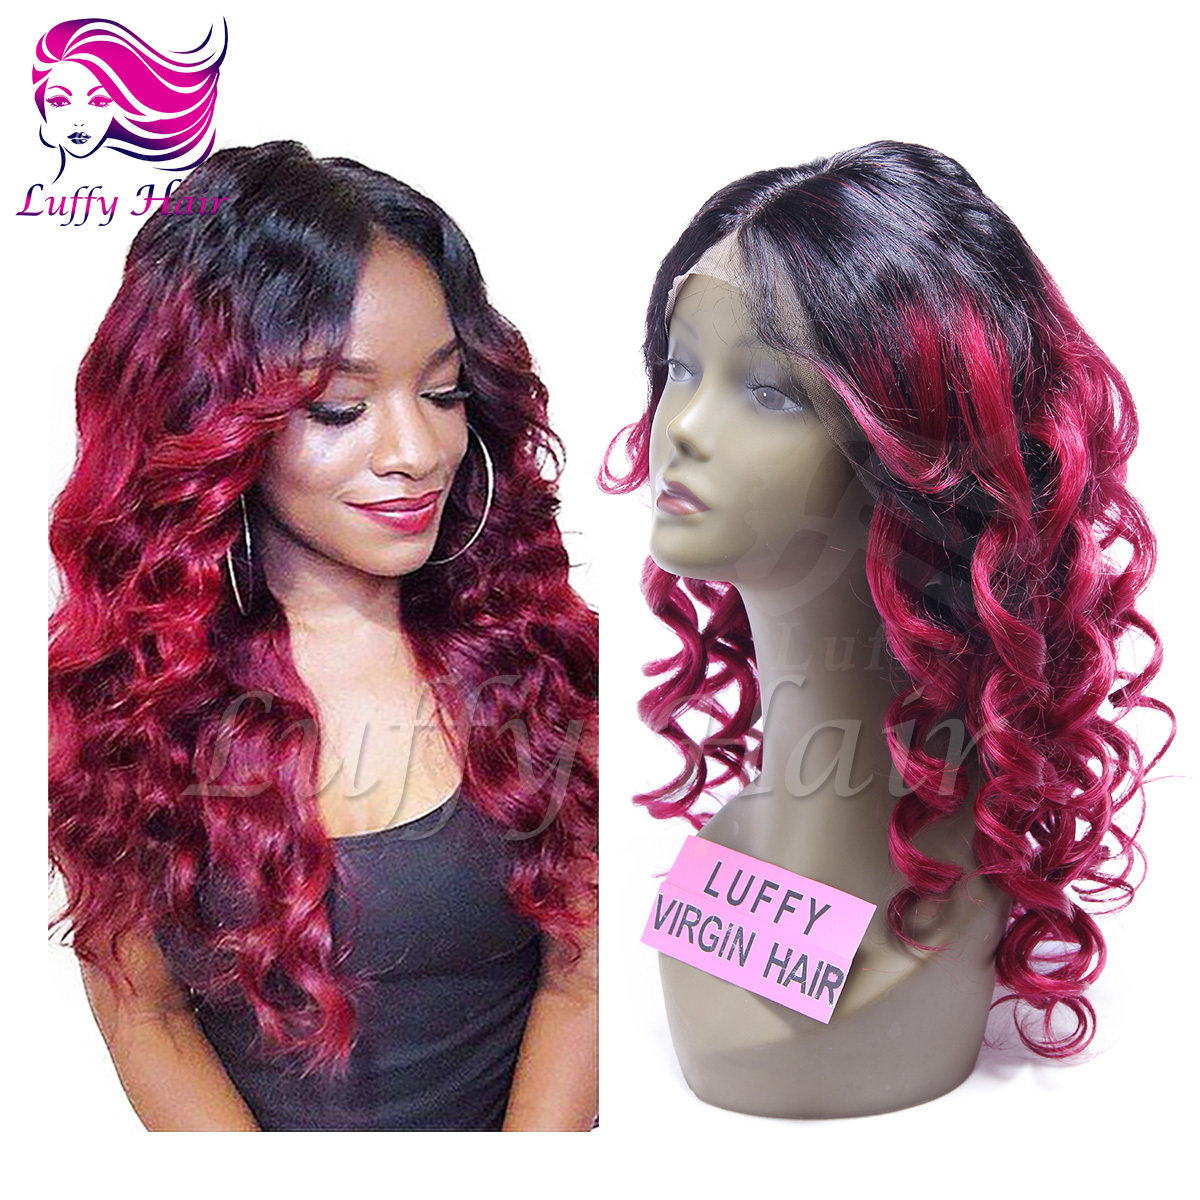 10A Virgin Human Hair #1B/#Burgundy Body Wave Wig - KWL029